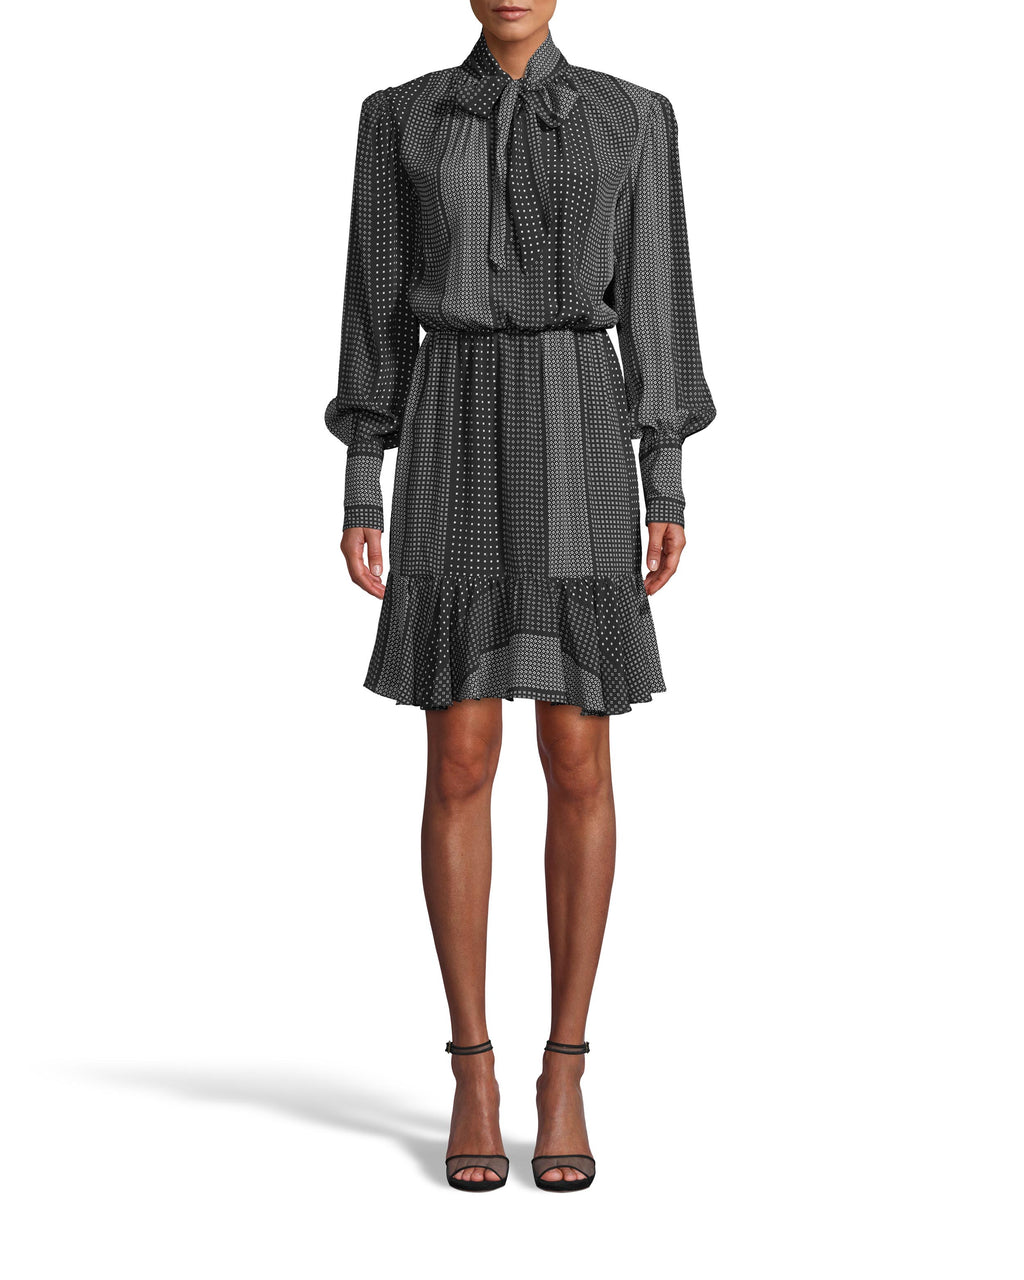 CD18094 - KALEIDOSTRIPE SILK STOCK TIE FLOUNCE DRESS - dresses - short - Our new kaleidostripe fall print features geometric polka dots. This mini dress features a flounce hem, a tie front, and cuffed sleeves. Add 1 line break Stylist Tip: Wear with chunky black boots.